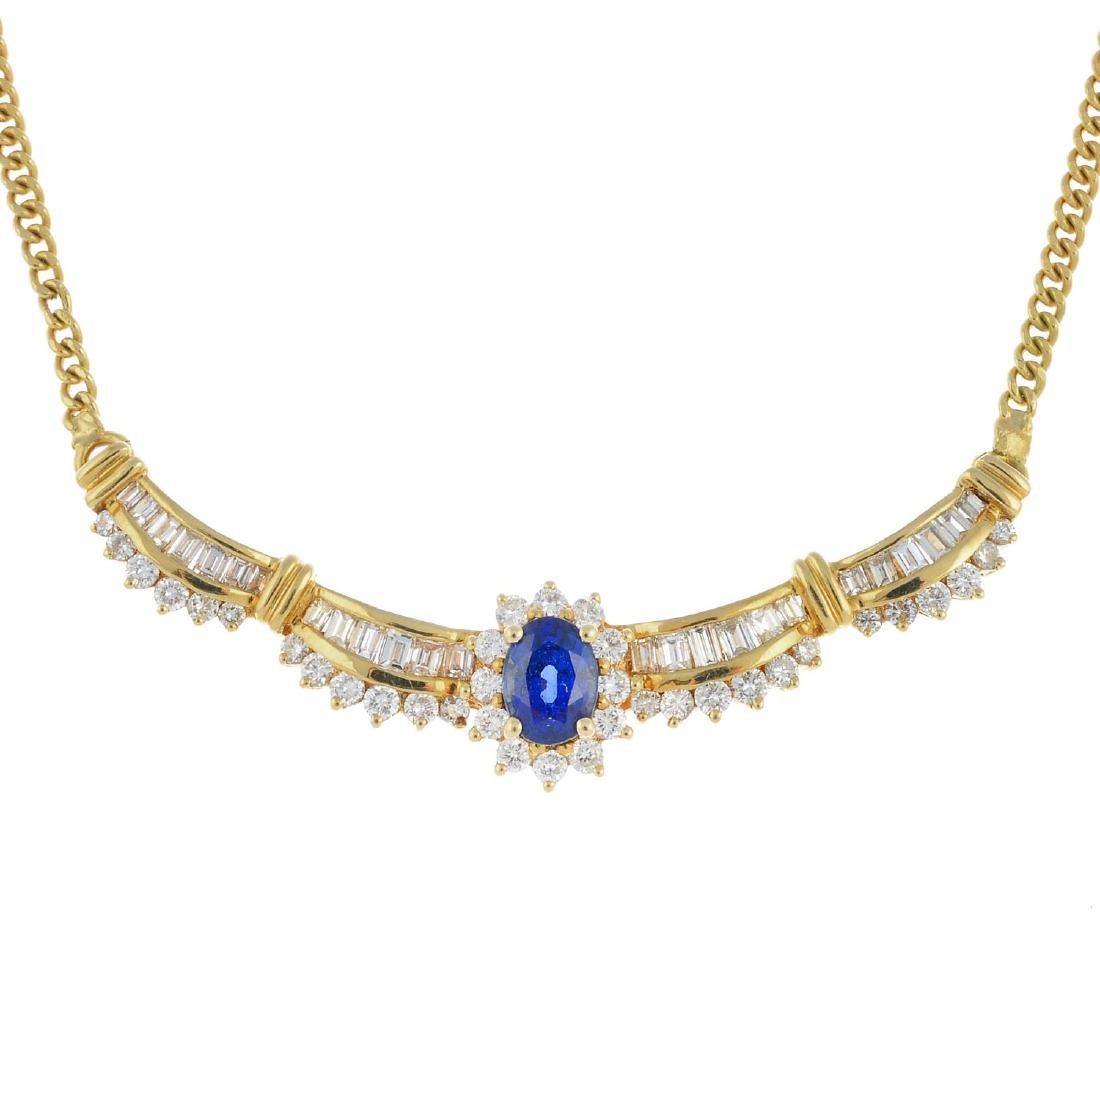 An 18ct gold sapphire and diamond necklace. The